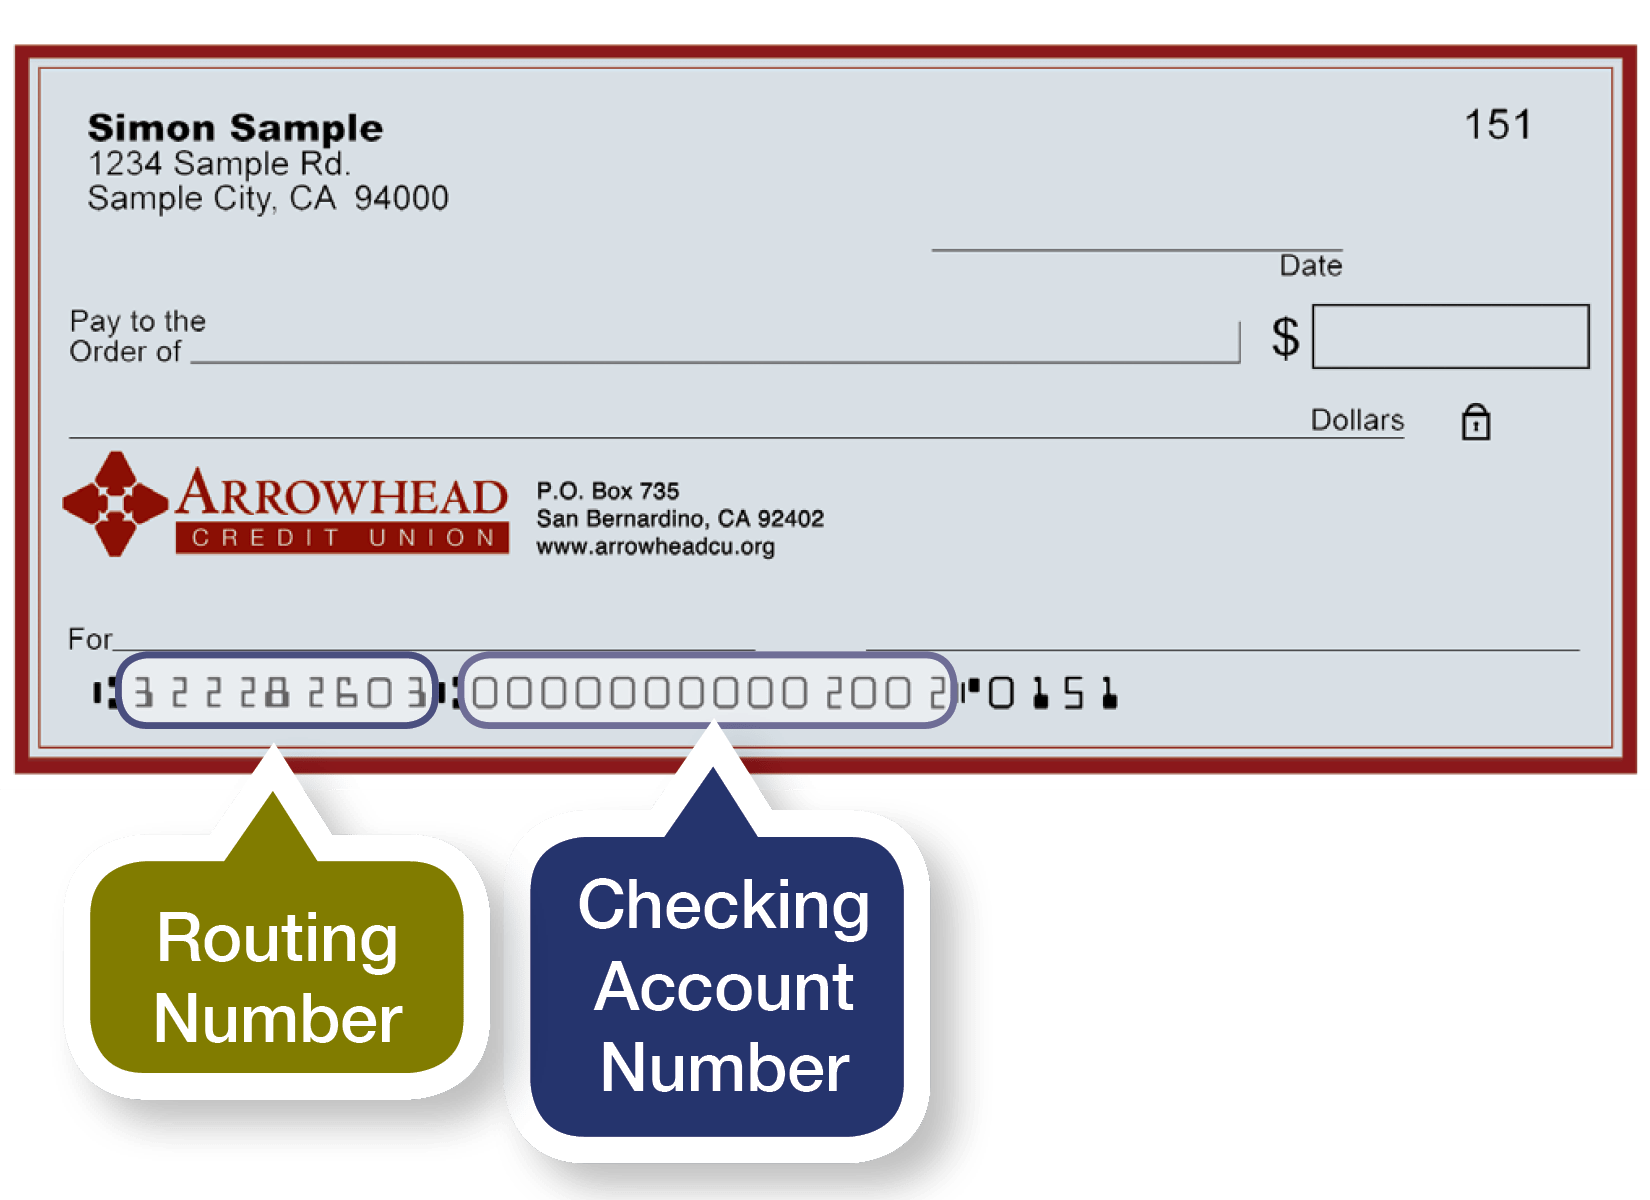 Routing Number Vs Account Number